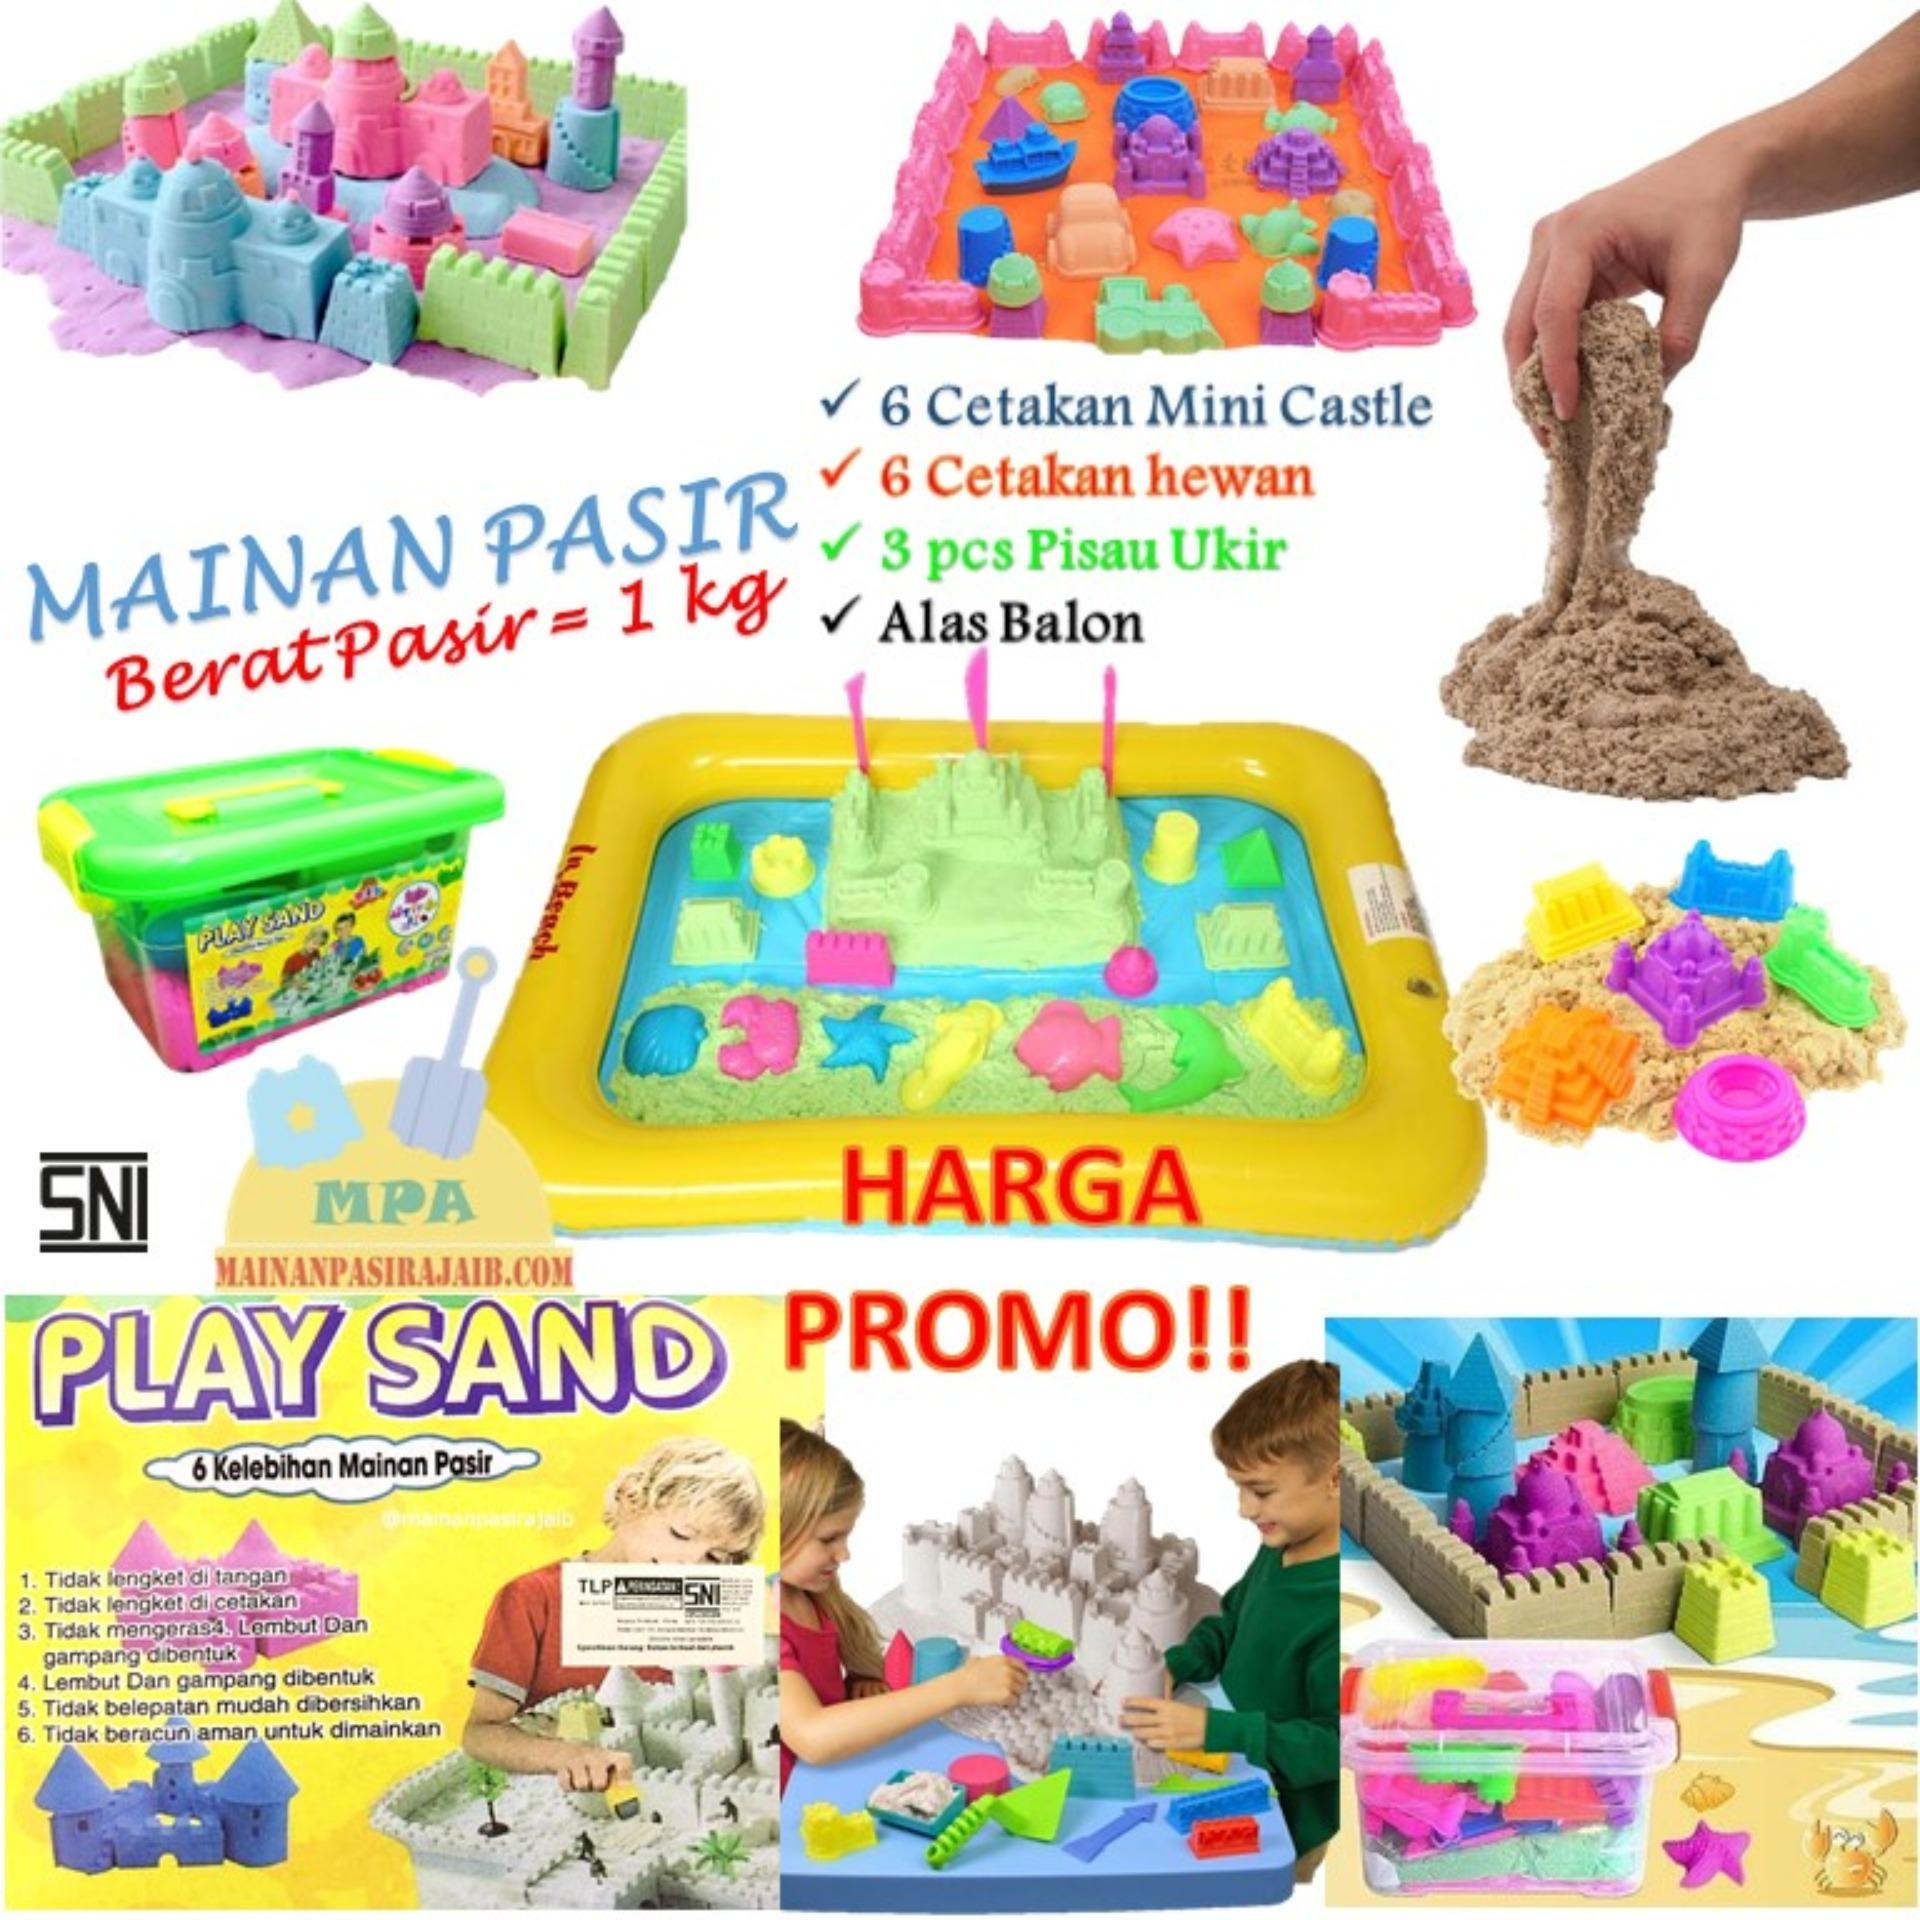 Jual Mainan Edukatif Pasir Ajaib Kinetic Sand Model Sand Play Sand 1 Kg Original Hijau Dengan Alas Balon Play Sand Branded